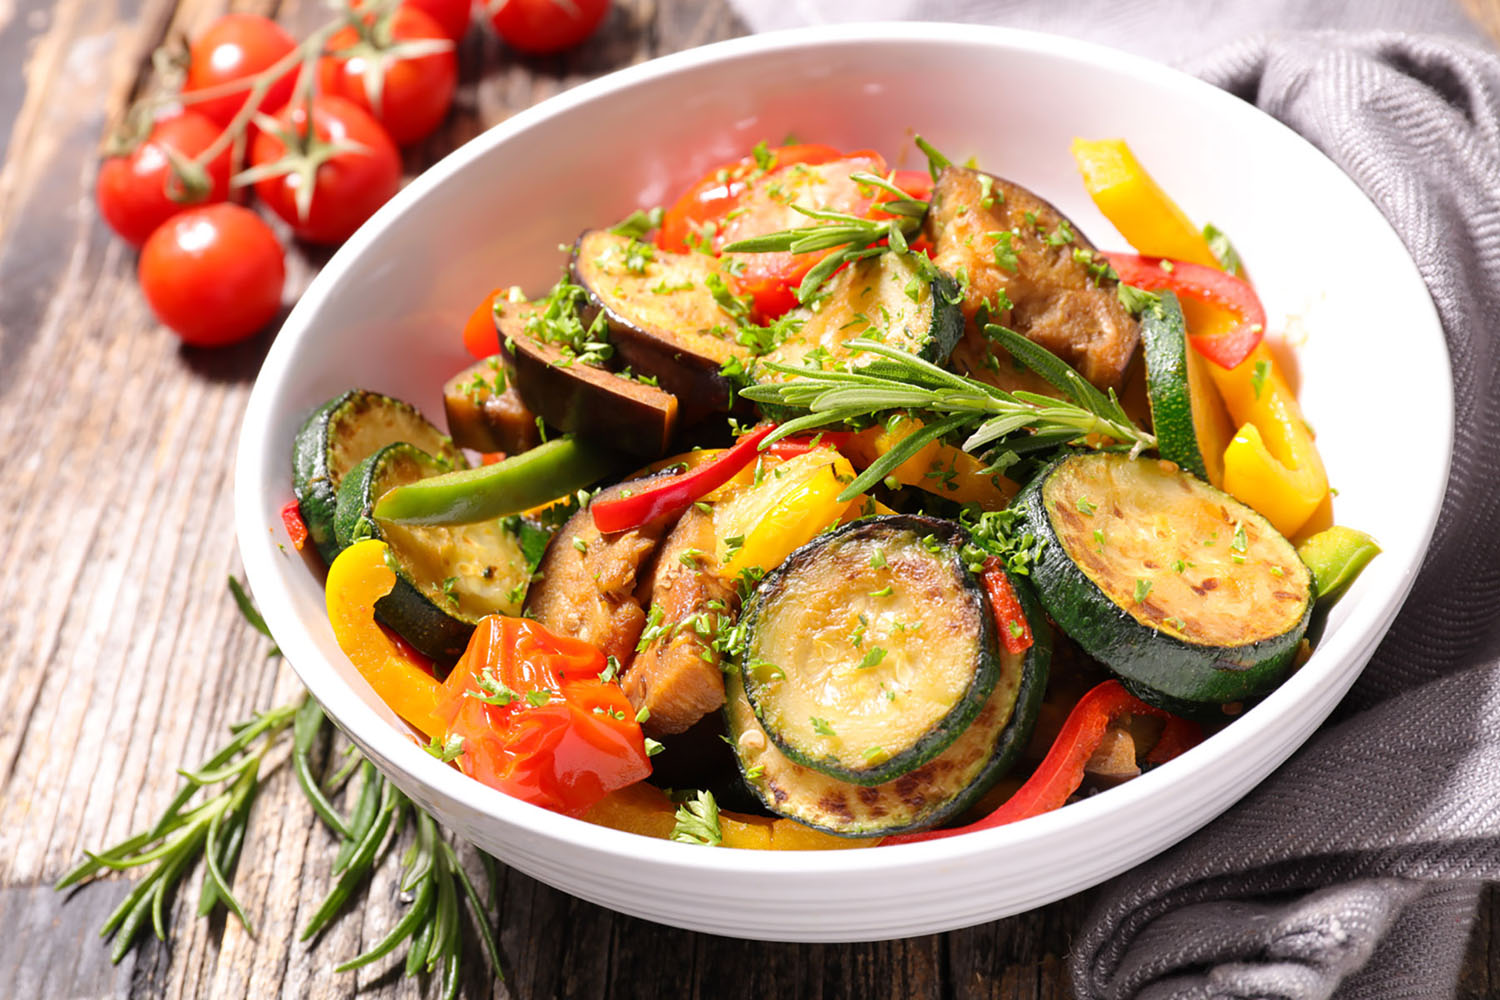 Thanks to the Disney movie of the same name, ratatouille is now one of France's best-known dishes.